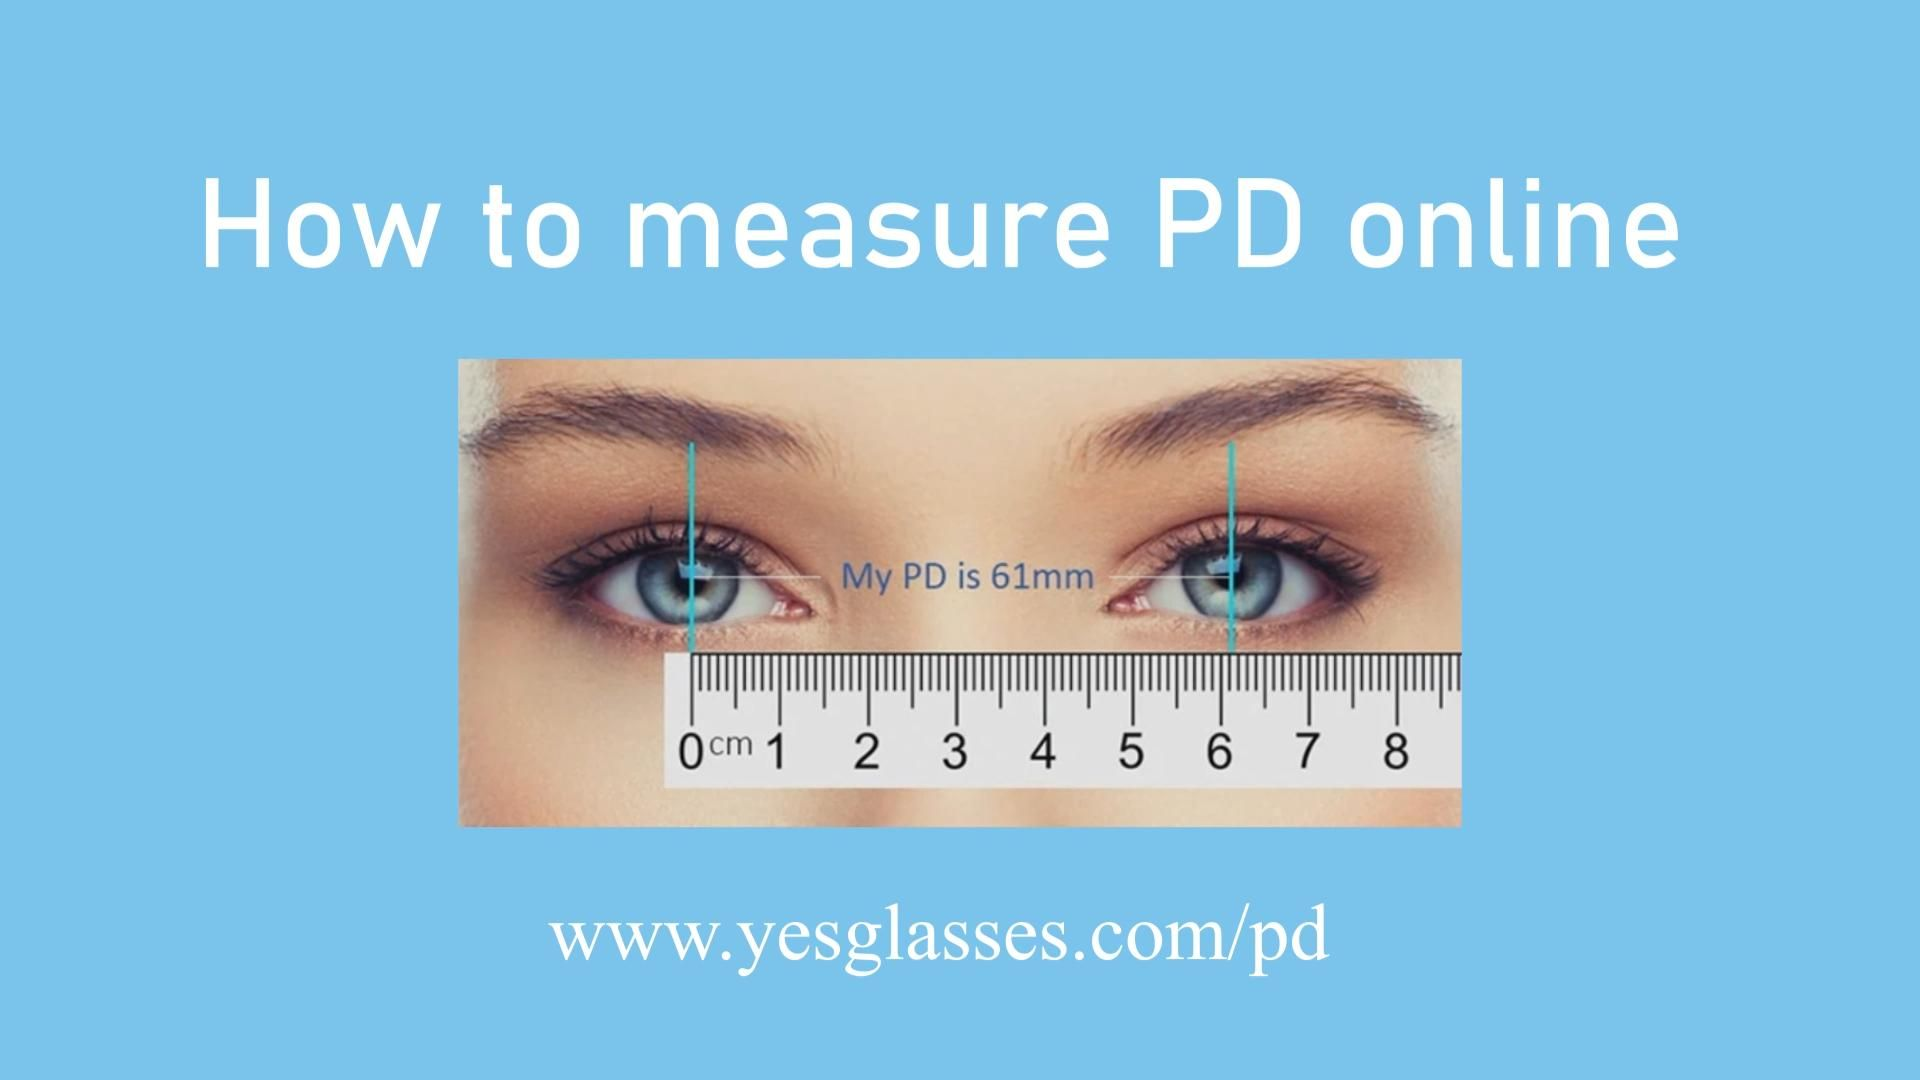 Pd Measurement Online How To Measure Your Pupillary Distance For Free Video How To Measure Yourself Online Measurement Tools